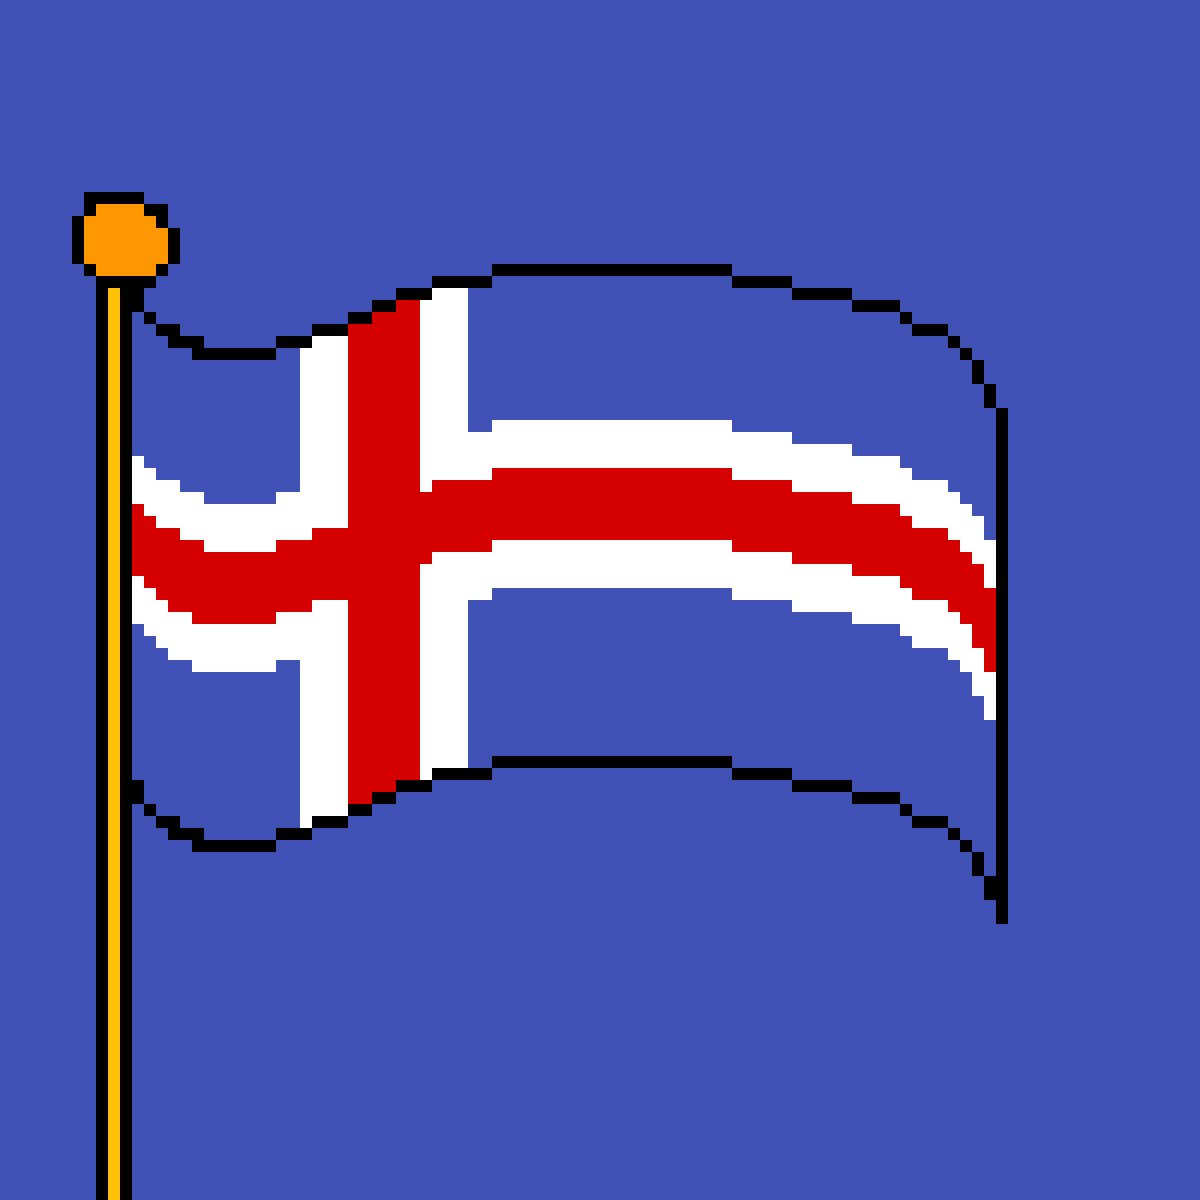 The flag of Iceland by poison-darts317